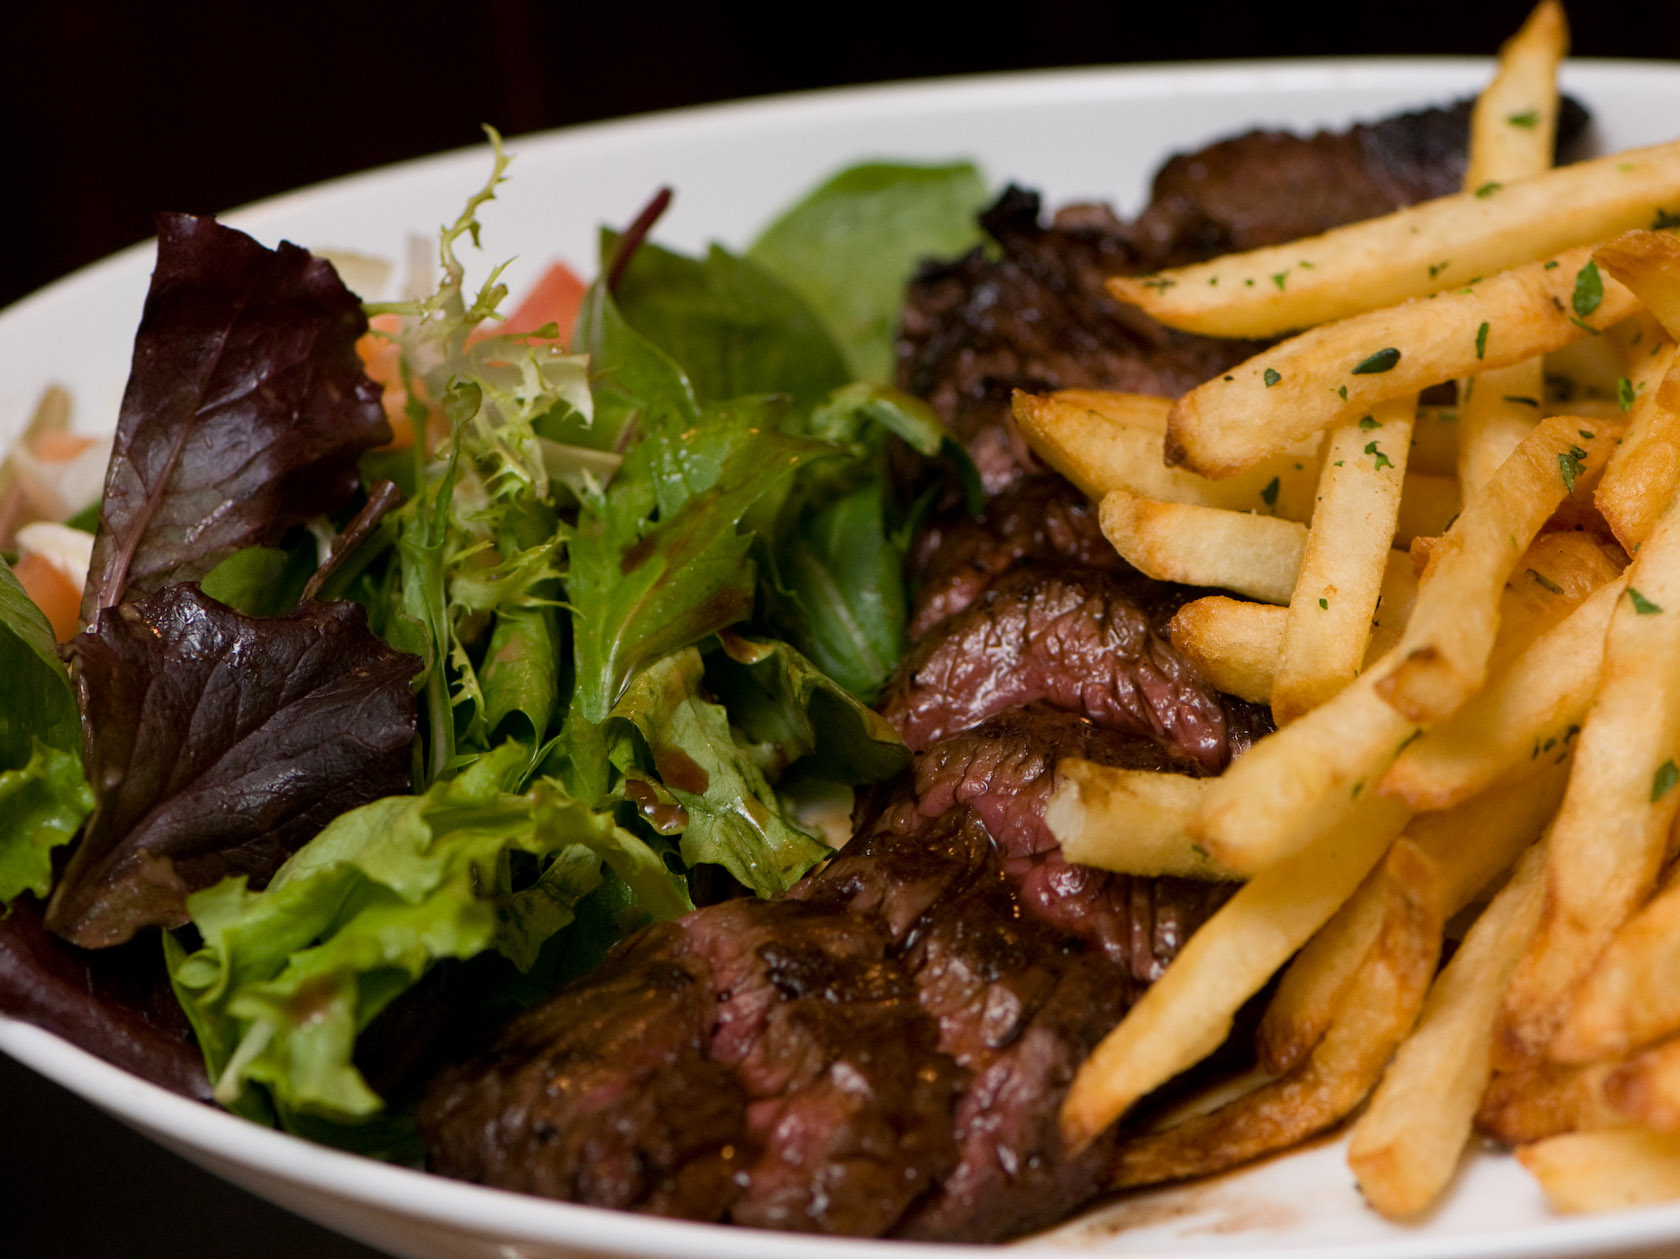 Steak Frites, hanger steak